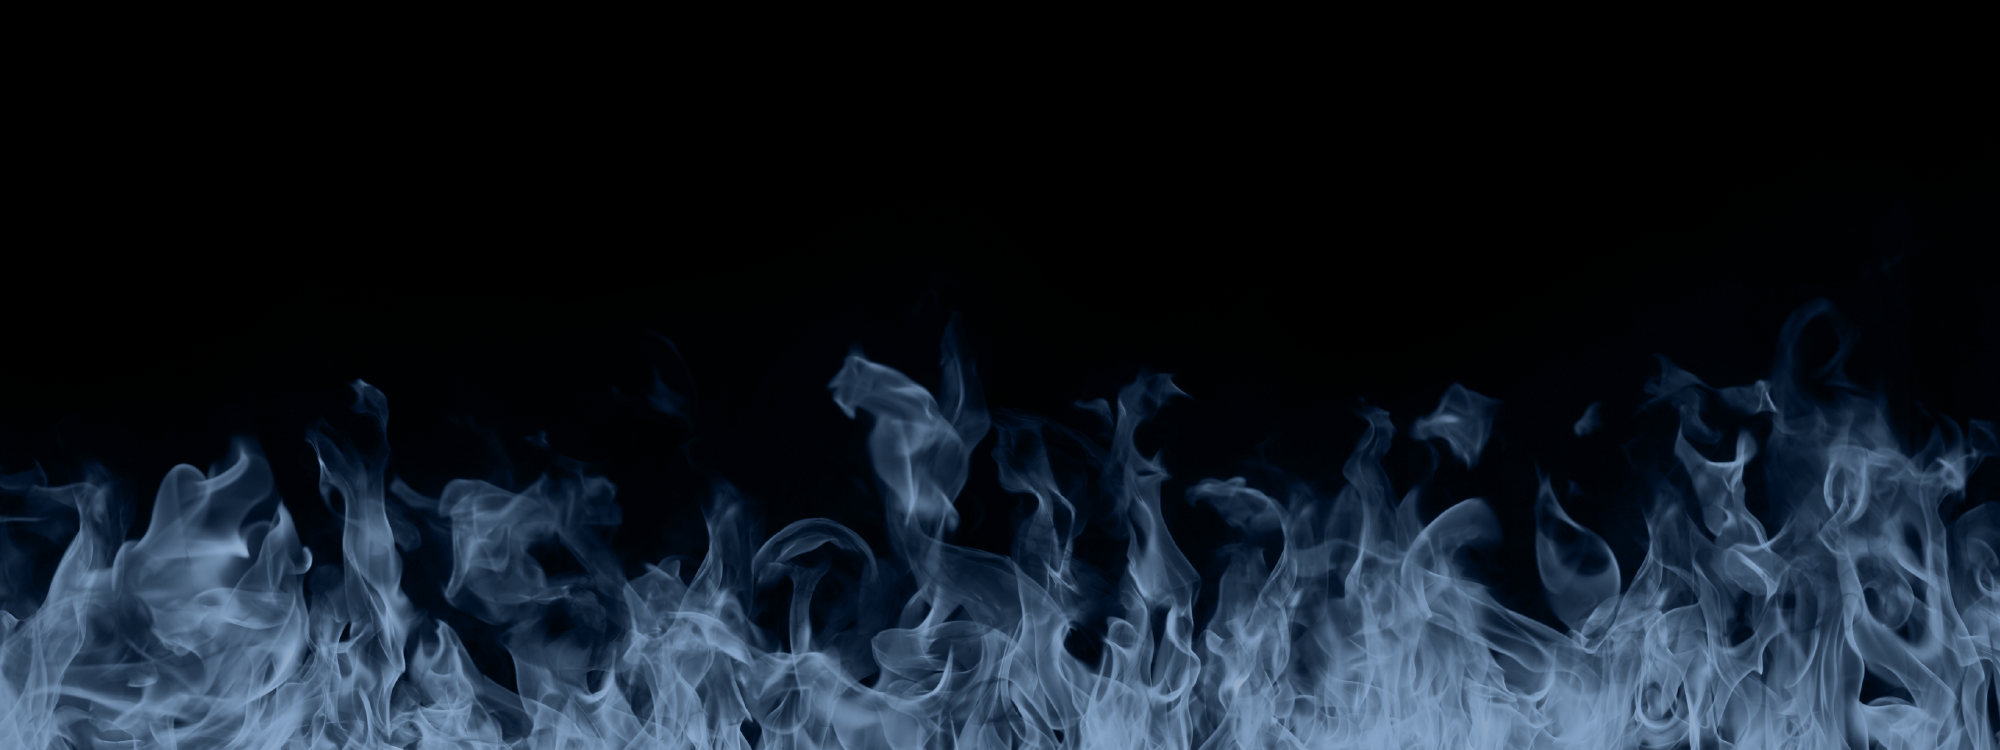 DME forensics background